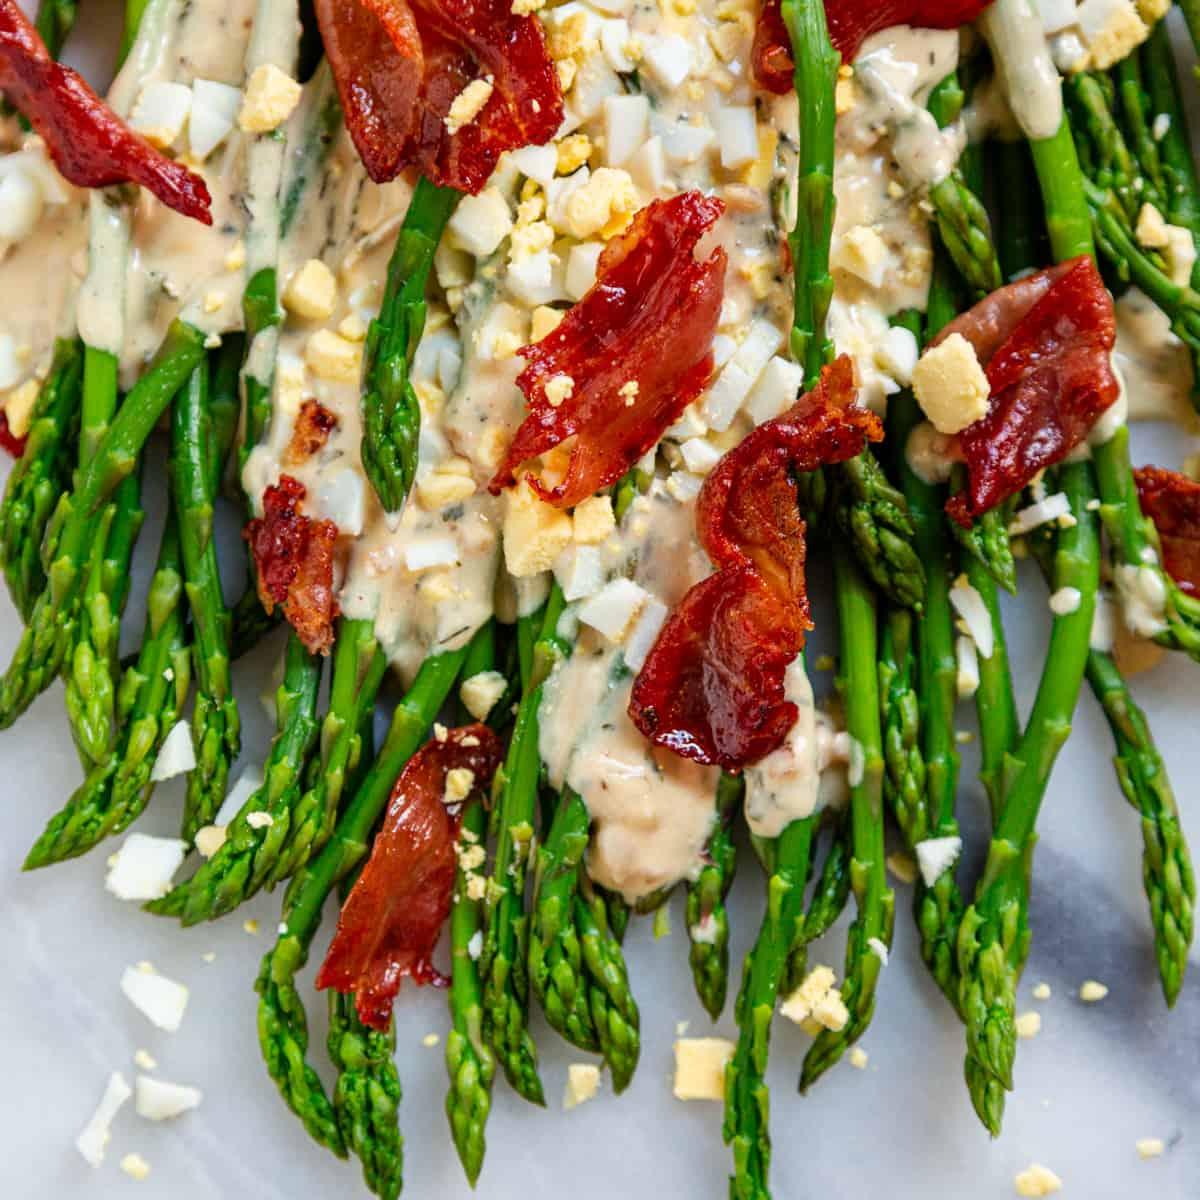 blanched asparagus with tarragon sauce, prosciutto and chopped egg and tarragon sauce